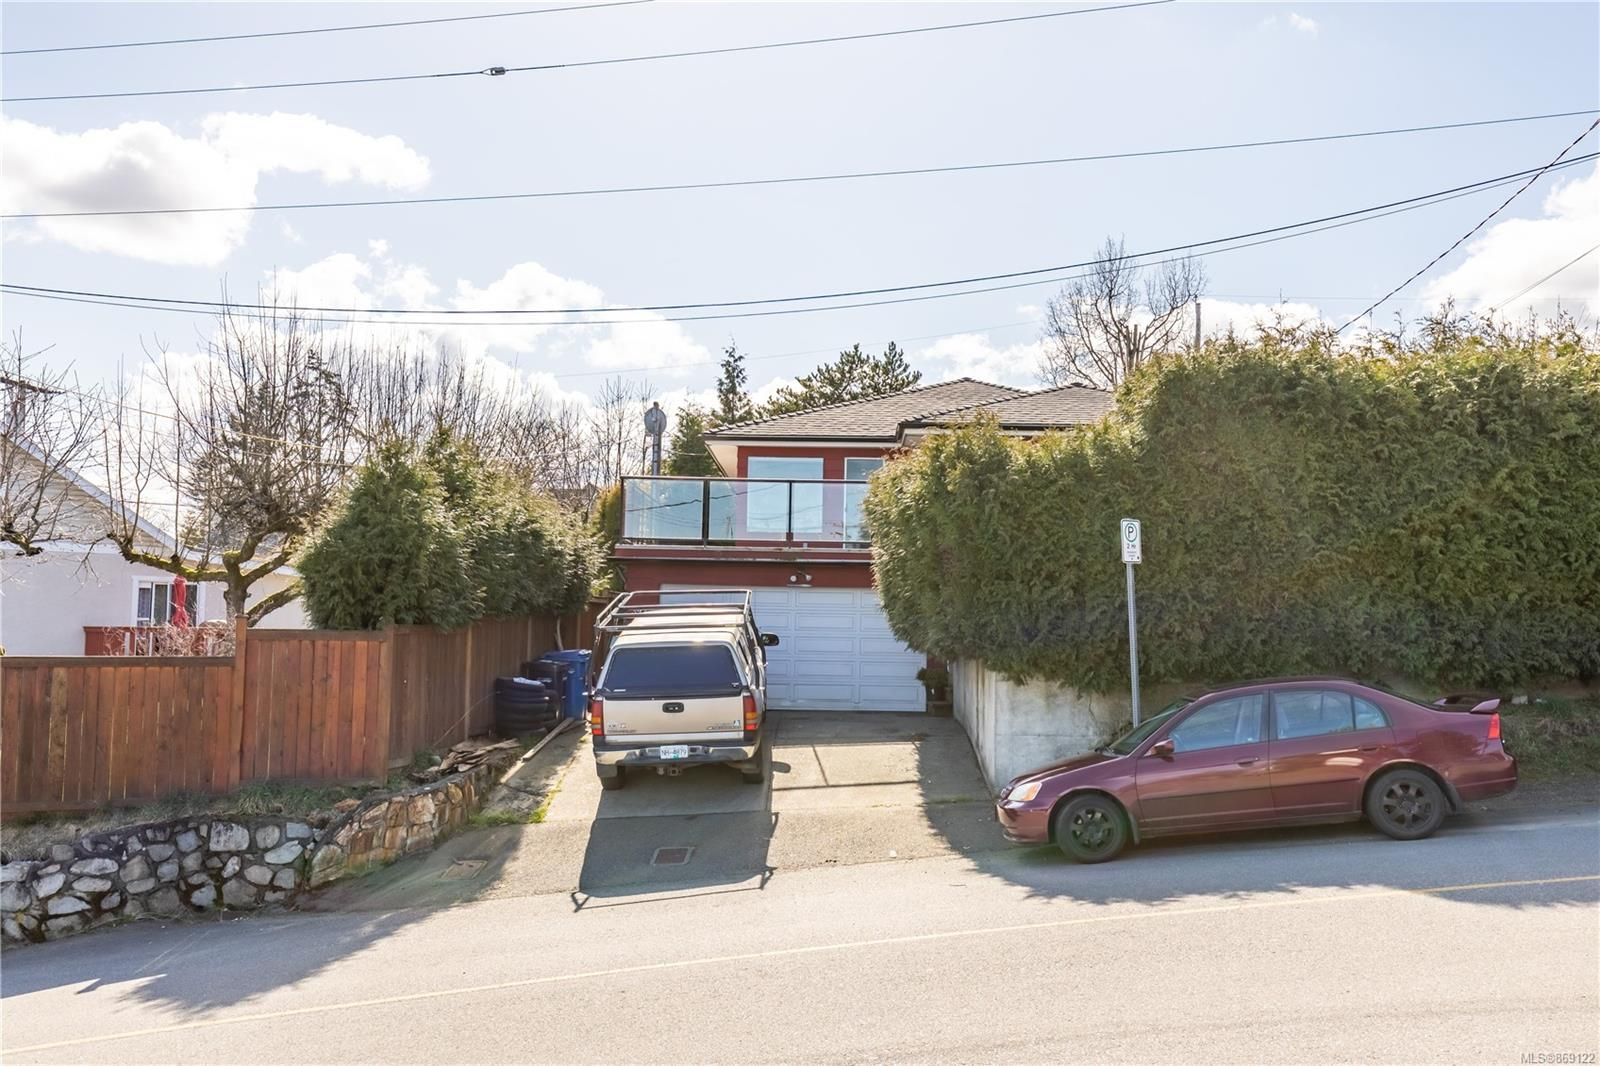 Main Photo: 393 Chestnut St in : Na Brechin Hill House for sale (Nanaimo)  : MLS®# 869122